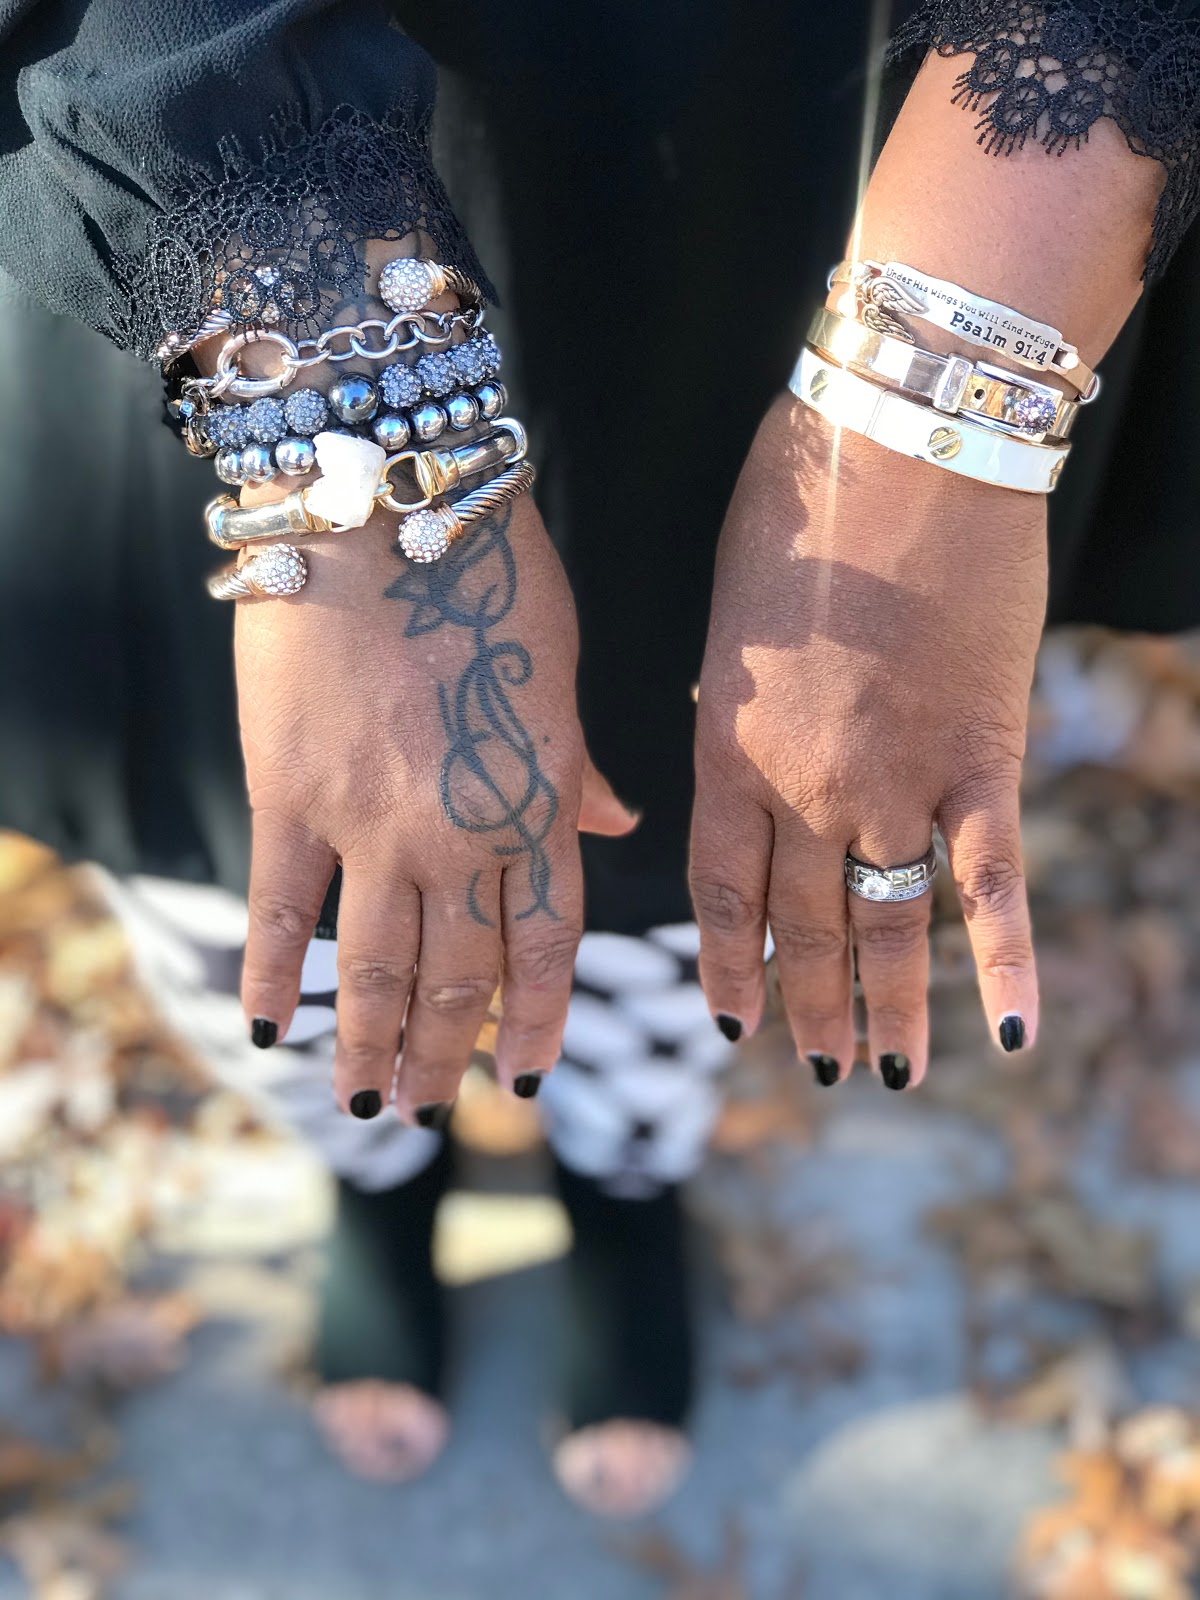 Bracelets on woman's arm. Shopping for Outfit